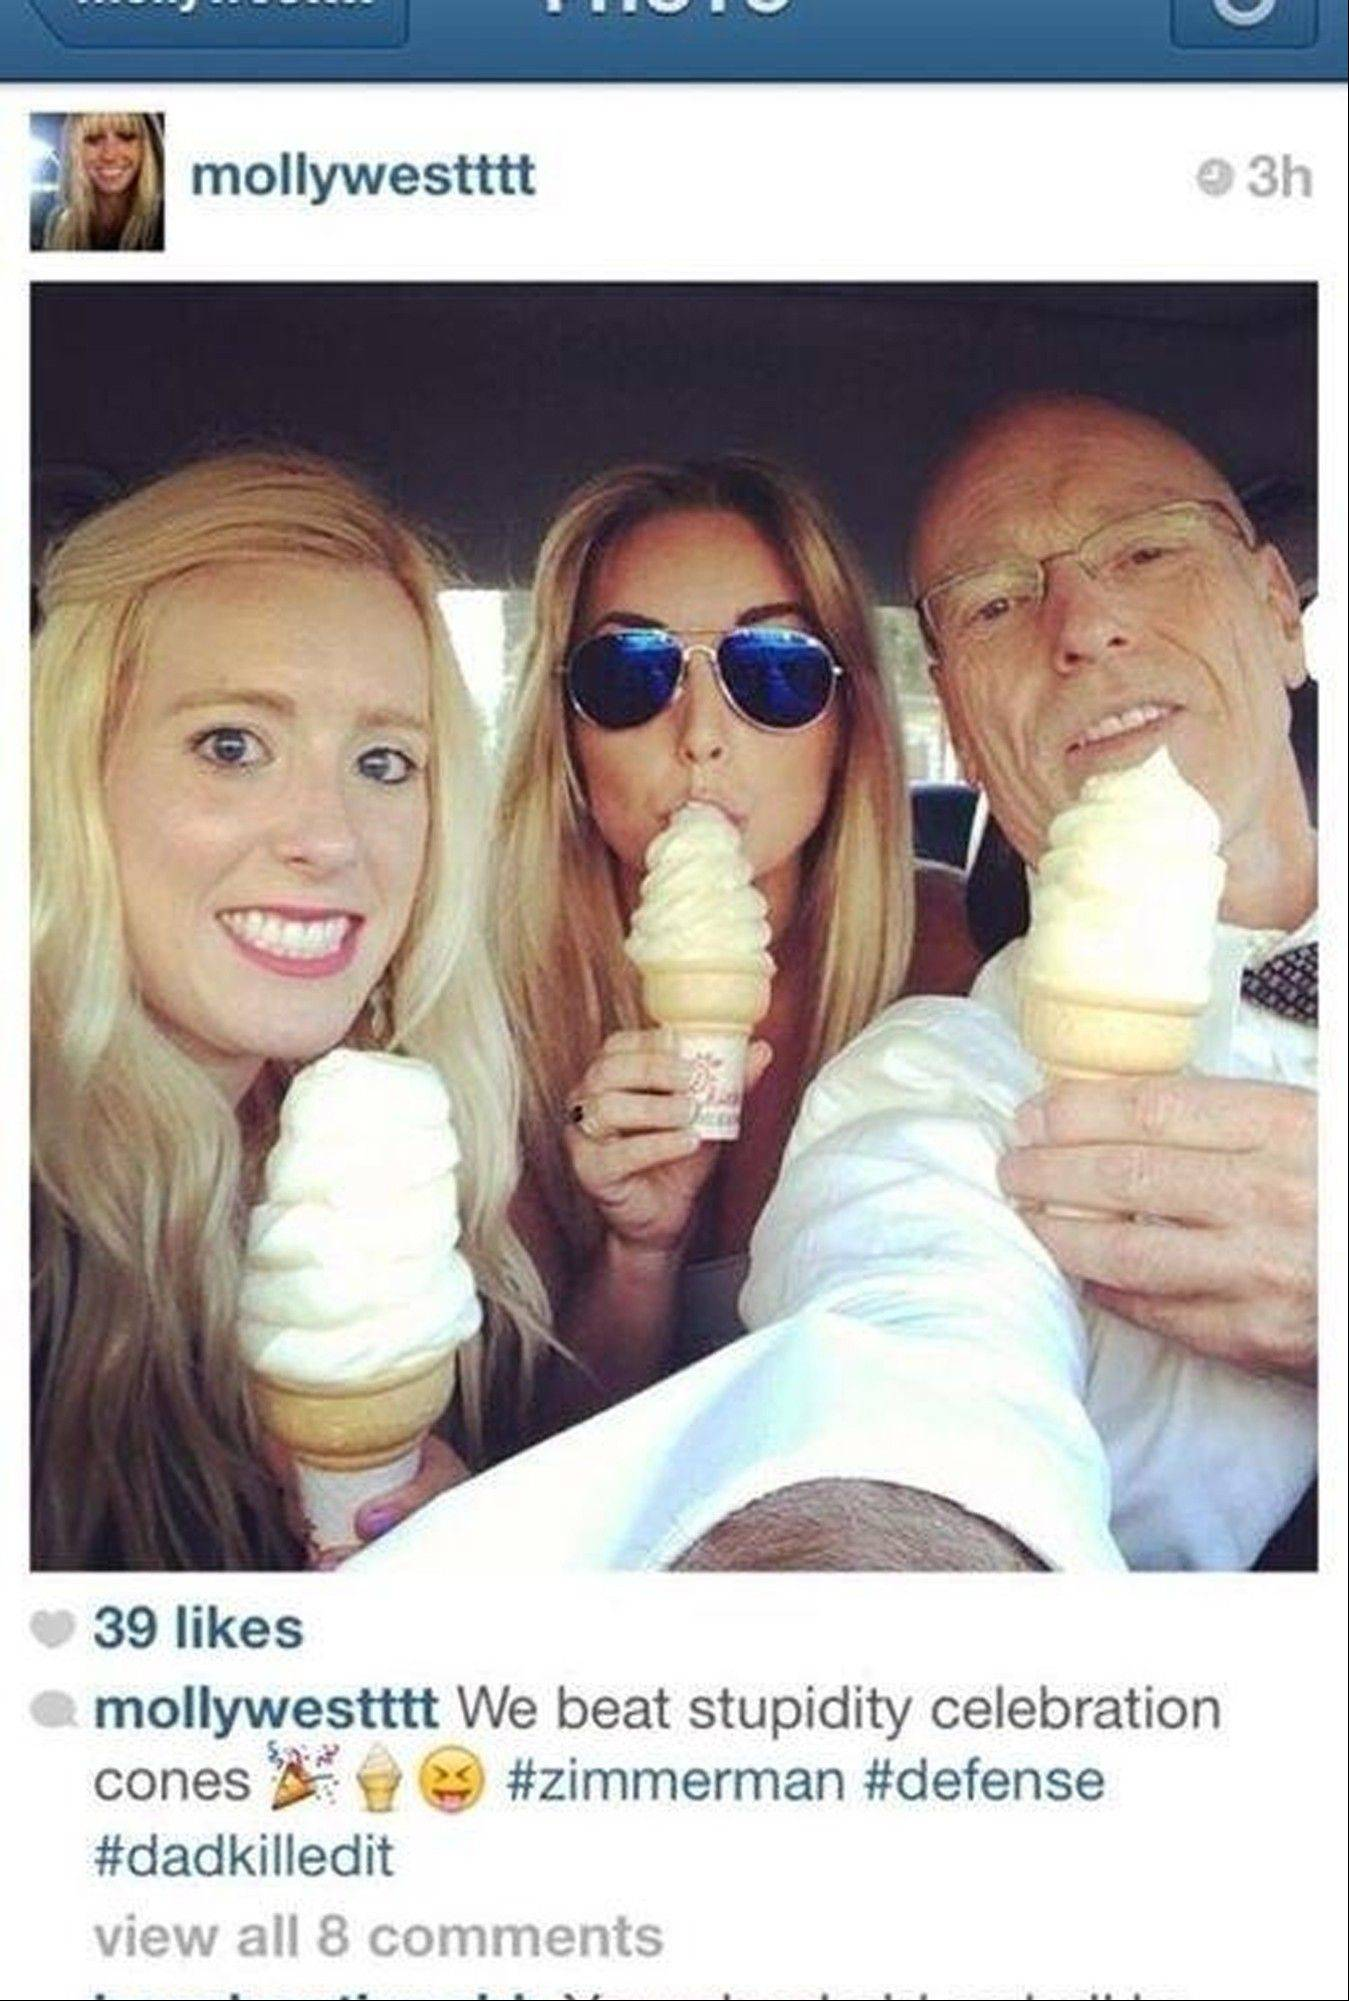 In this undated photo posted on Instagram, George Zimmerman defense attorney Don West, right, eats ice cream with his daughters. Prosecutors have asked a judge in the George Zimmerman trial to conduct an inquiry into the photo, but the lawyer said Tuesday it was unrelated to testimony in the case.